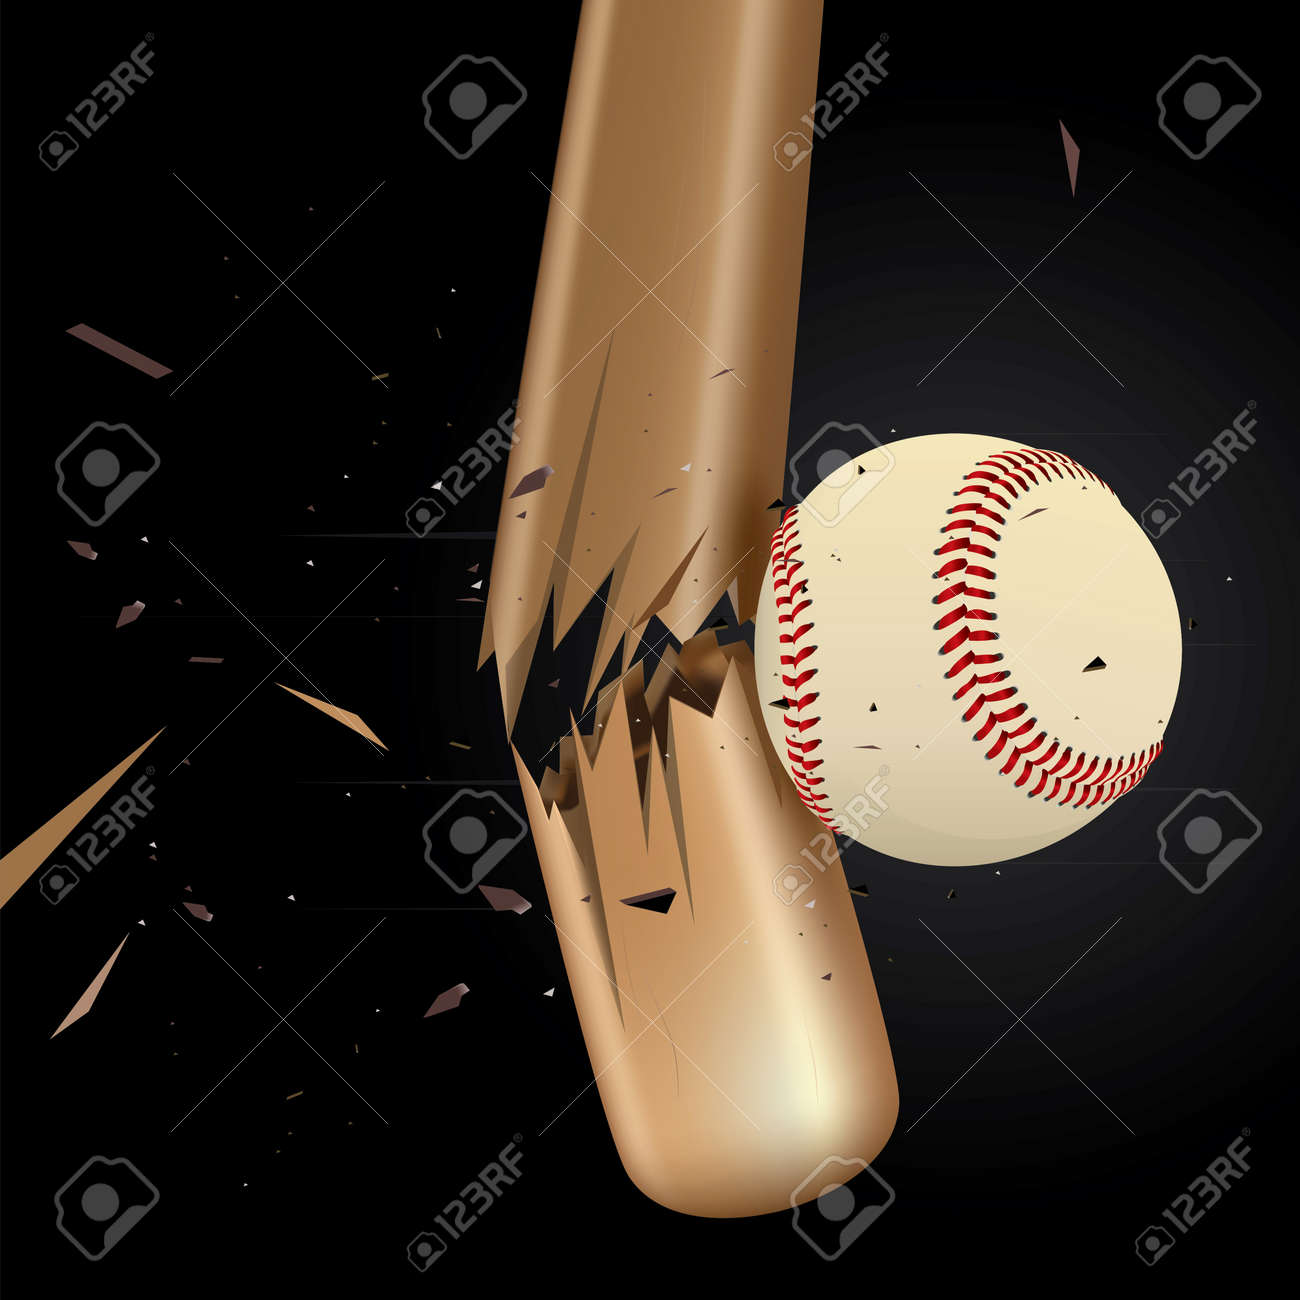 Baseball ball drawing of a broken baseball bat Stock Vector - 9085624